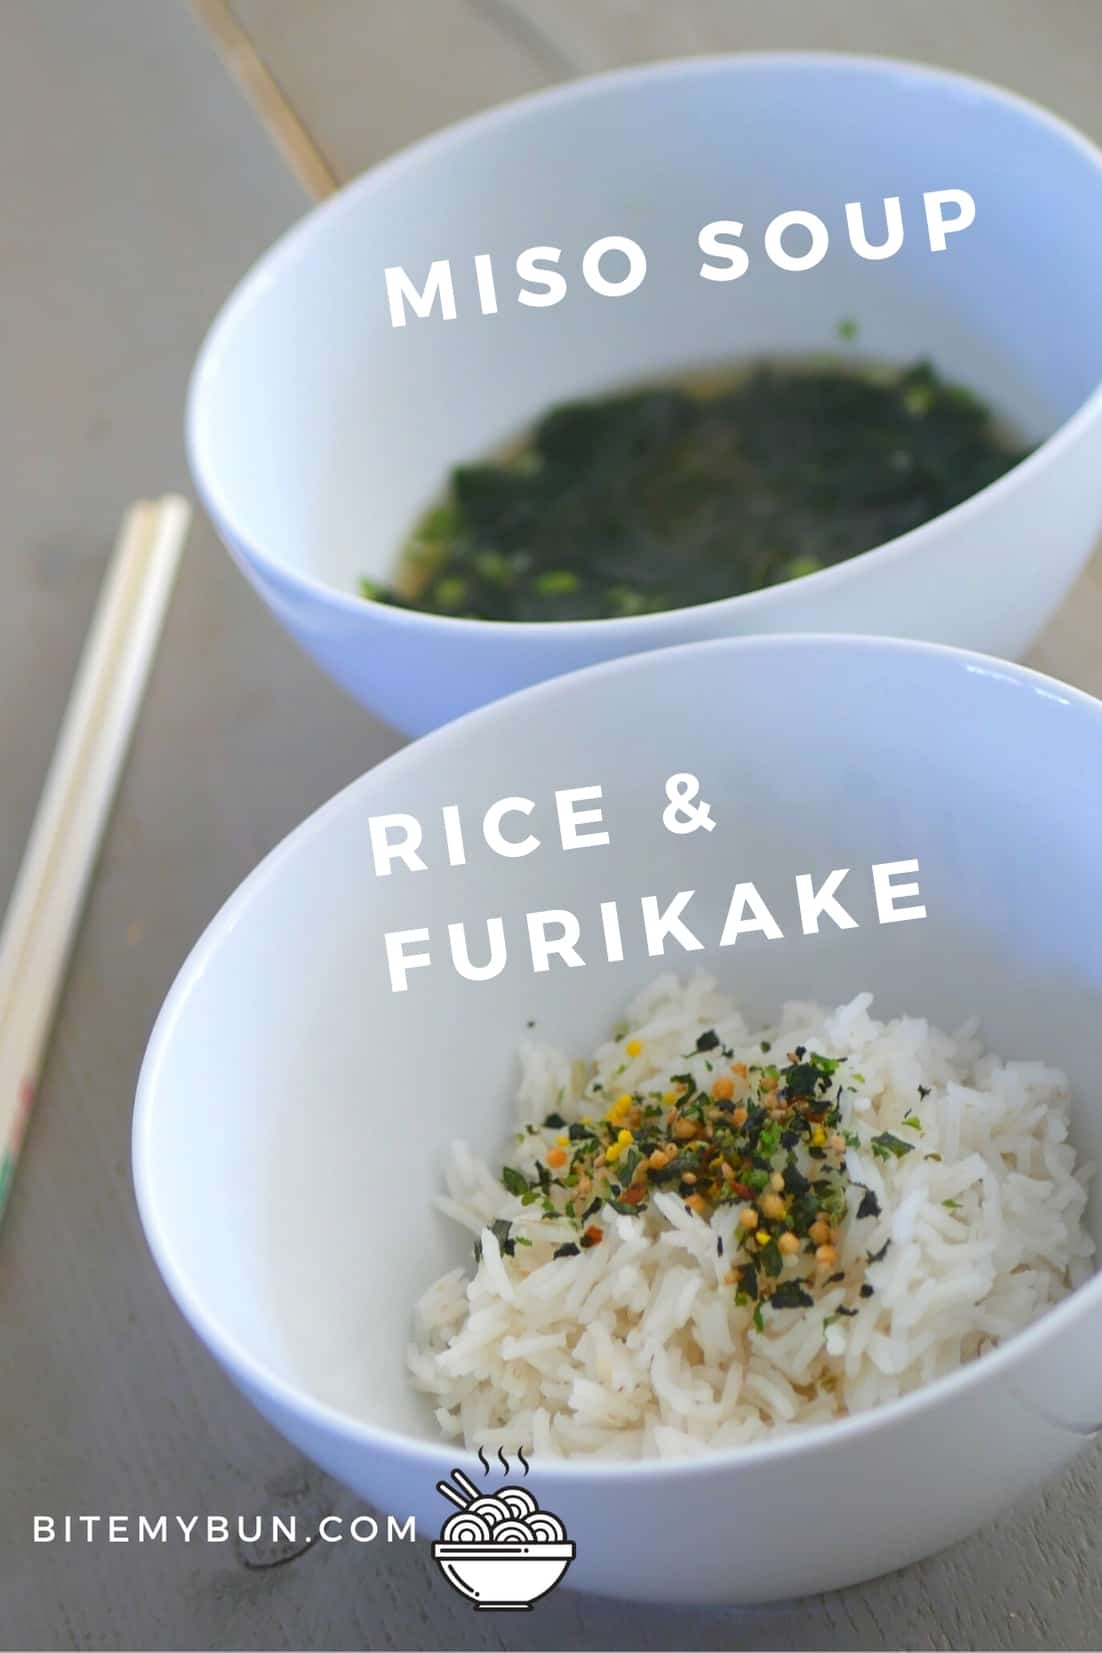 Miso soup with rice and furikake